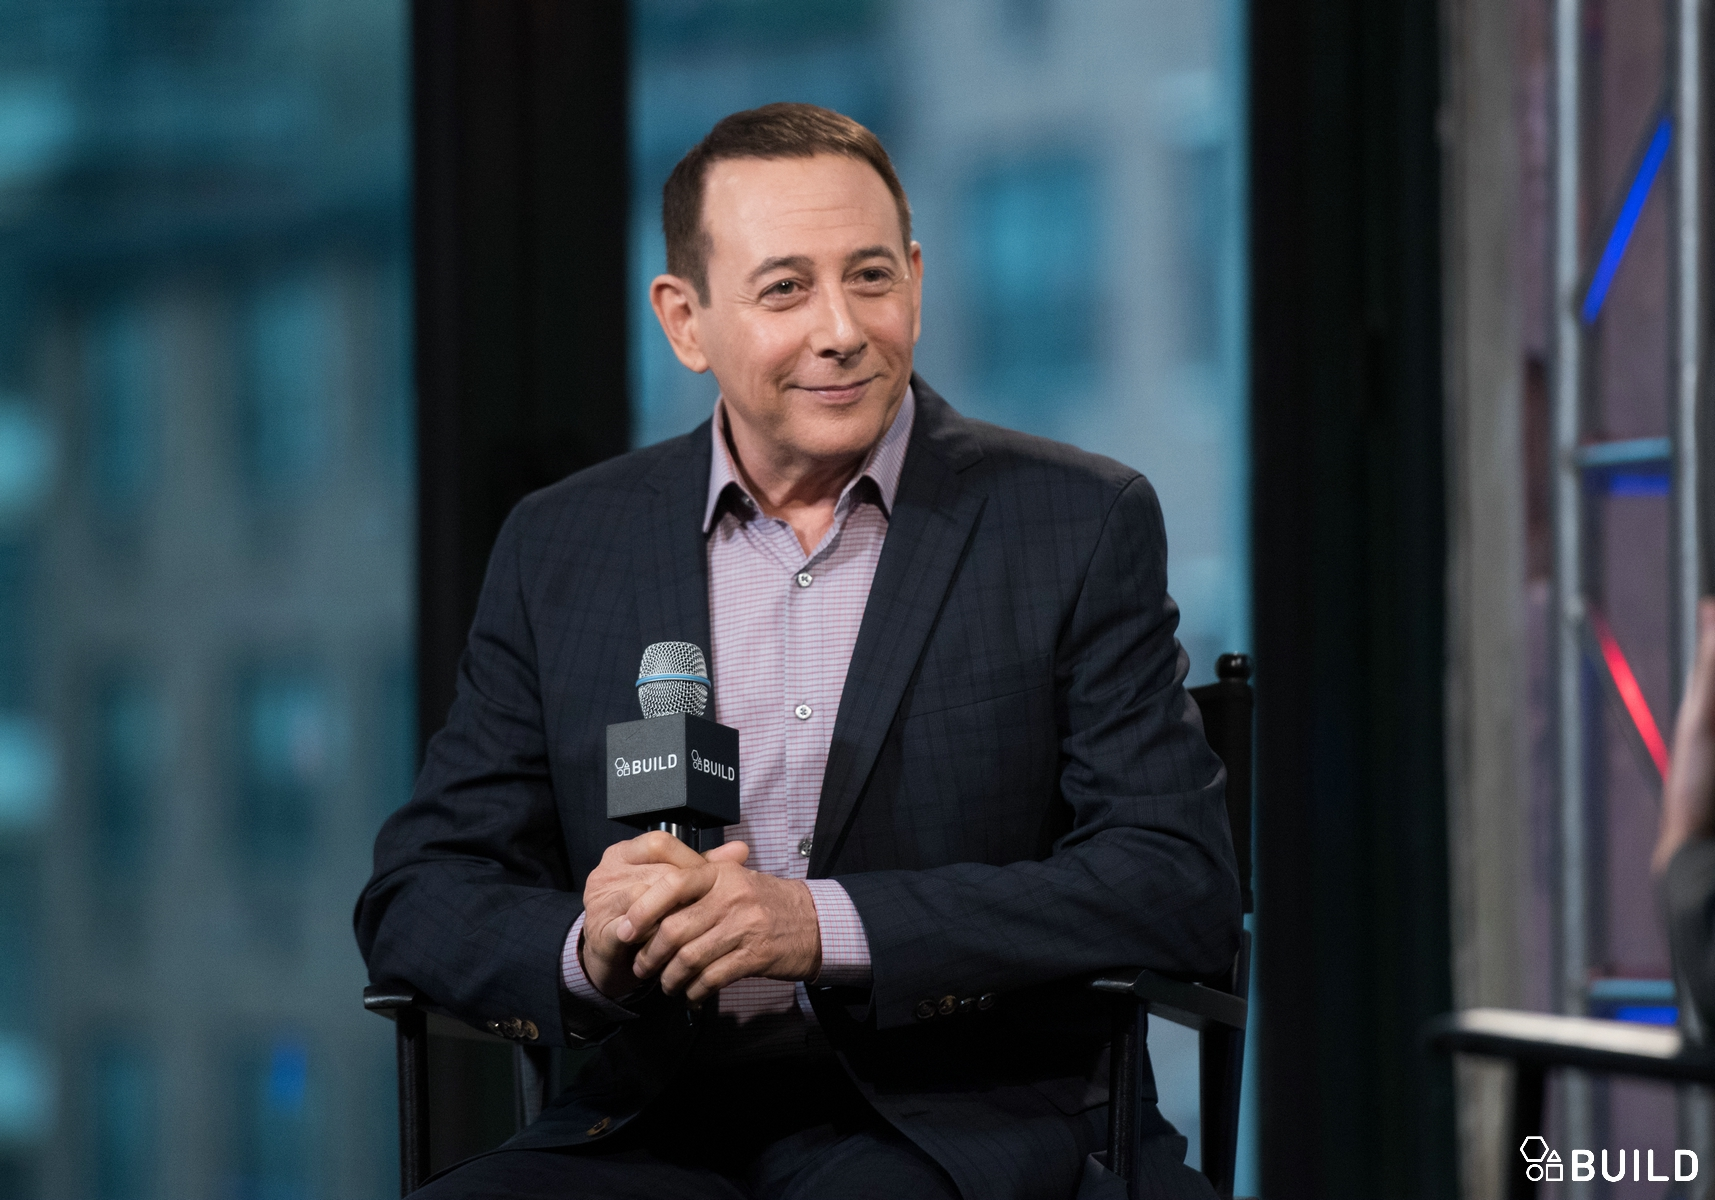 Paul Reubens visits AOL Hq for Build on March 25, 2016 in New York. Photos by Noam Galai